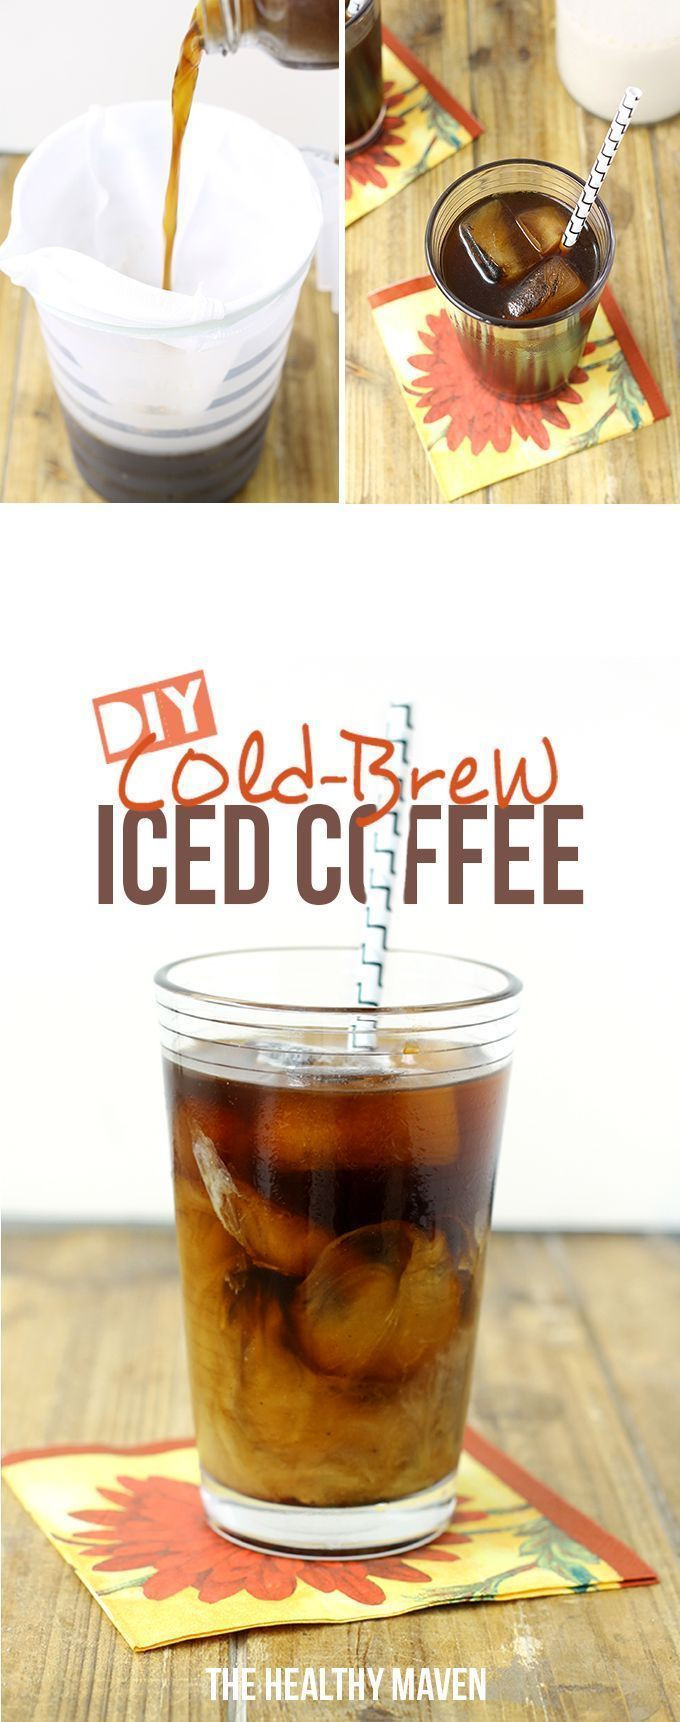 Best ideas about DIY Cold Brew Coffee . Save or Pin DIY Cold Brew Iced Coffee Recipe Now.